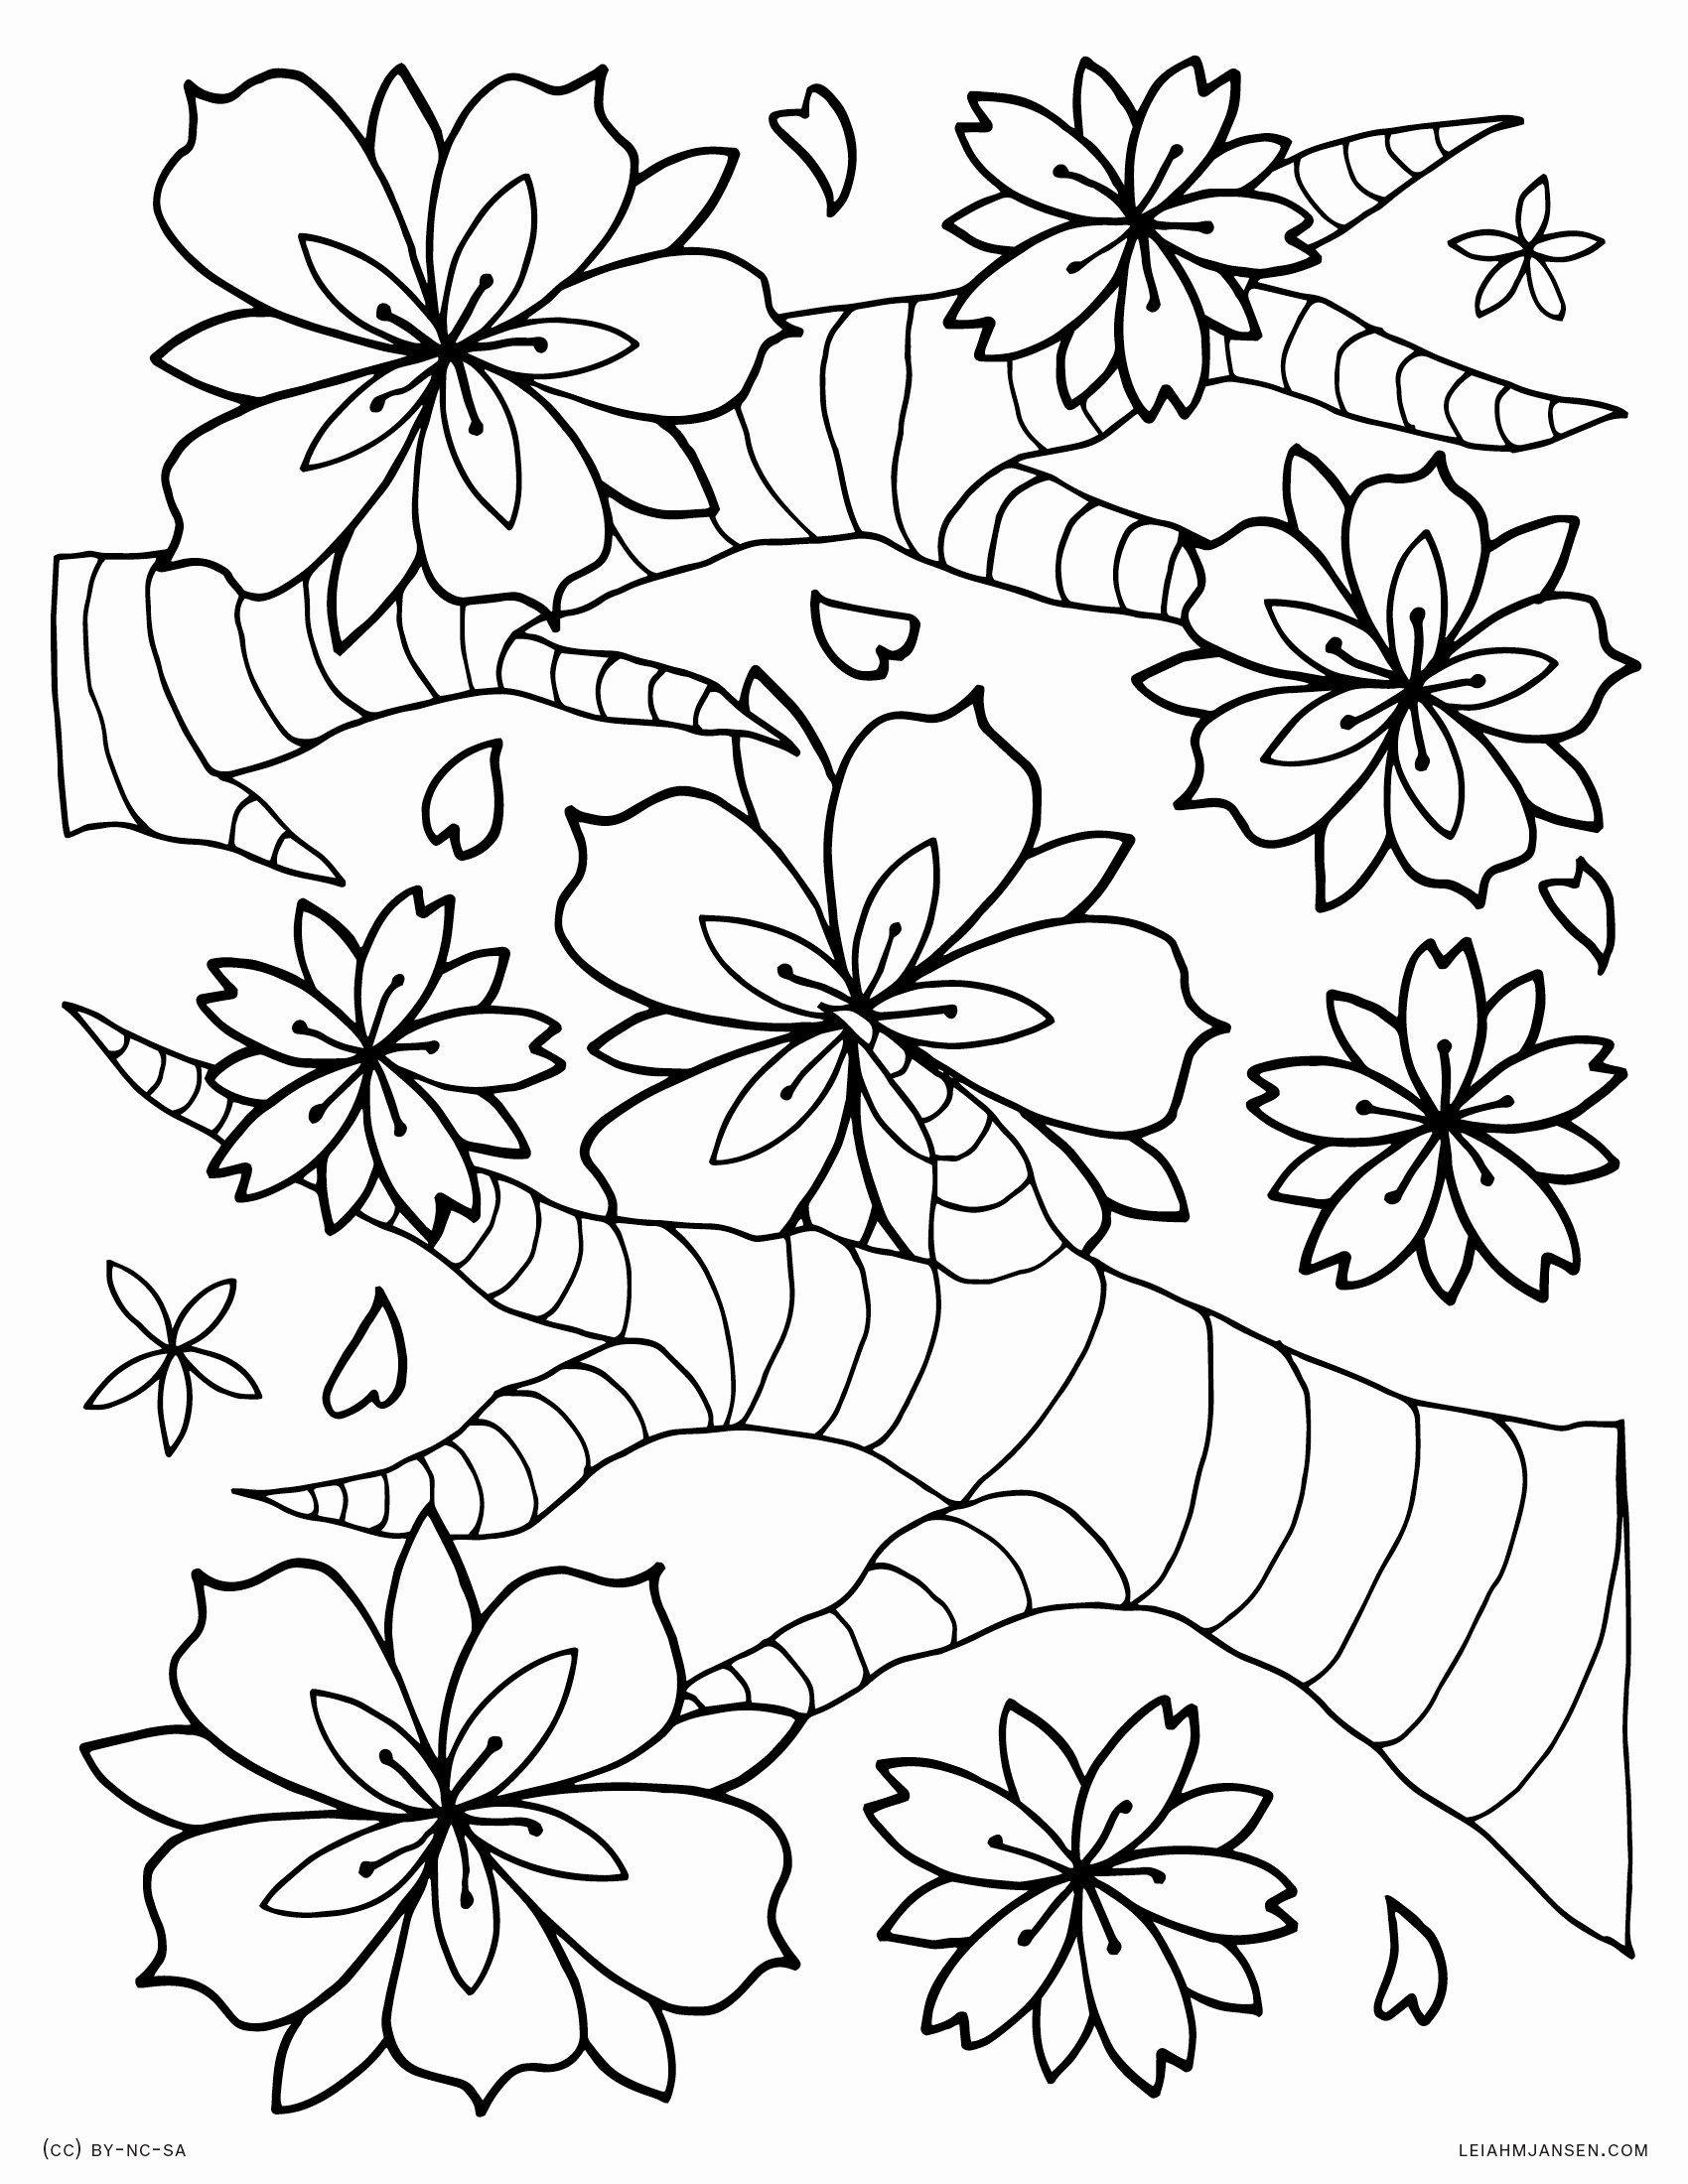 cherry blossom coloring pages cherry blossom coloring pages coloring home cherry coloring blossom pages 1 1